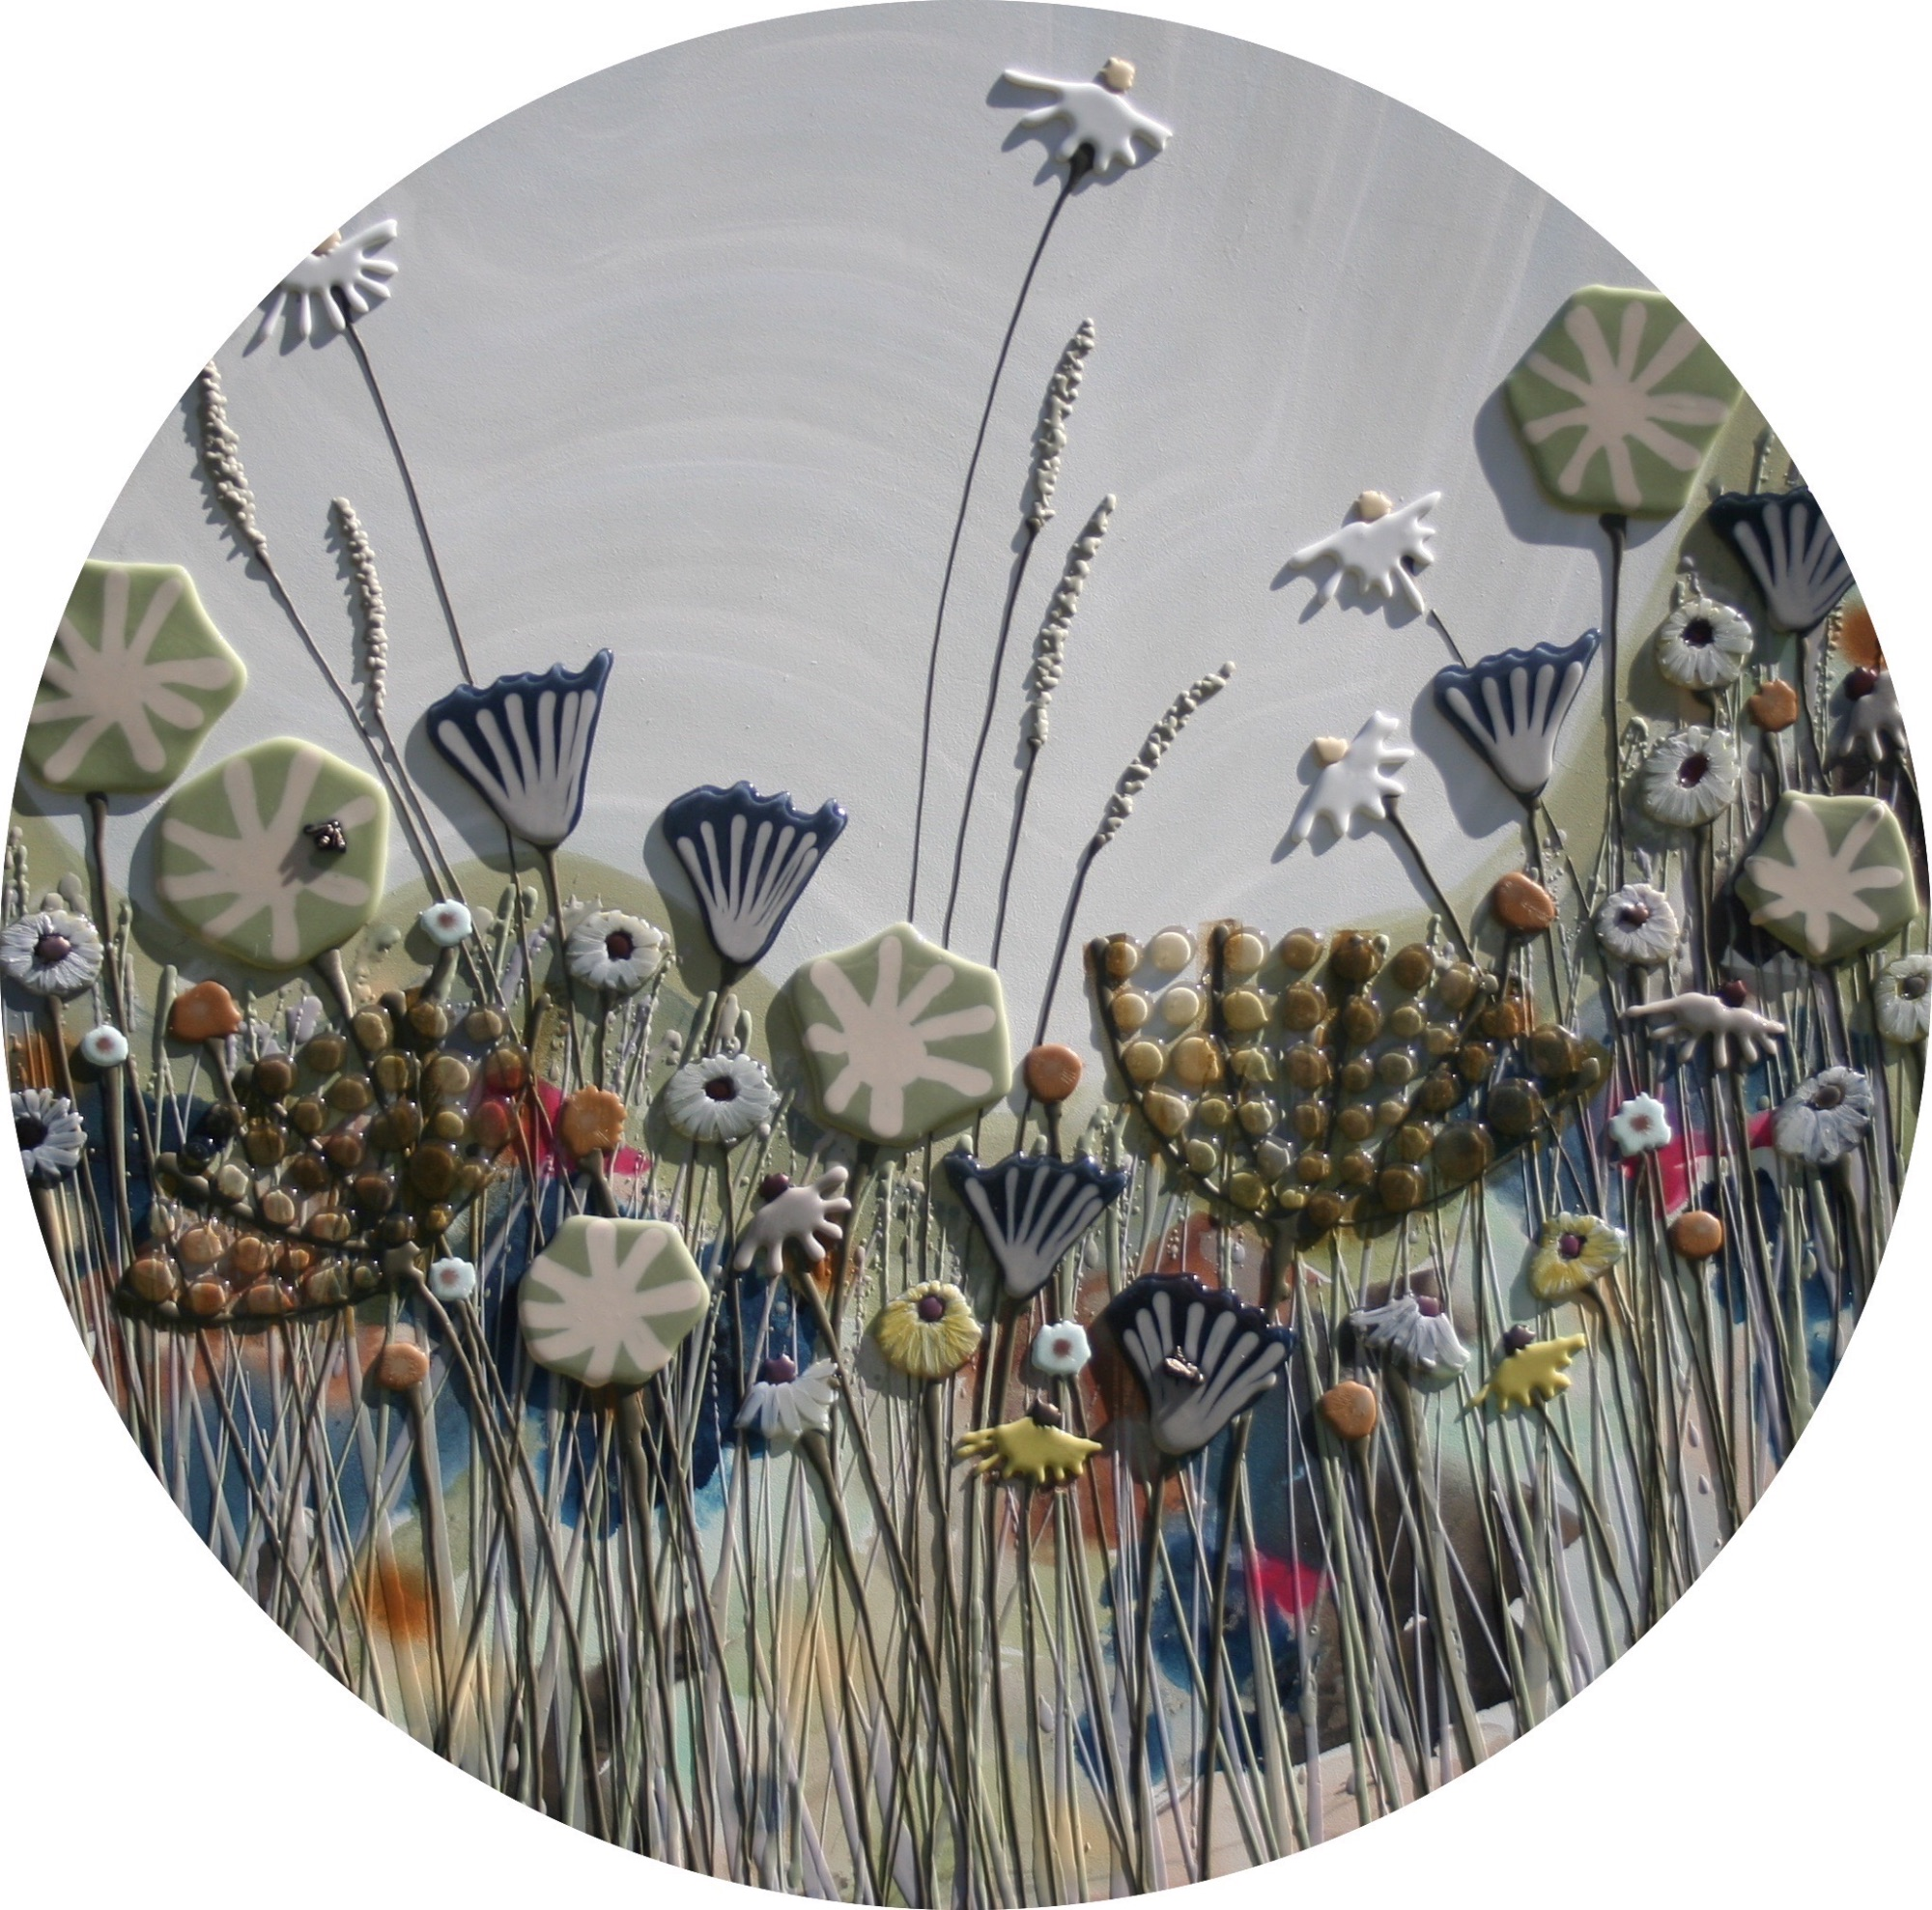 Circular Blue & Pale Green Meadow with Blue Sky - 100cm Diameter - Beeswax & Glass on Board